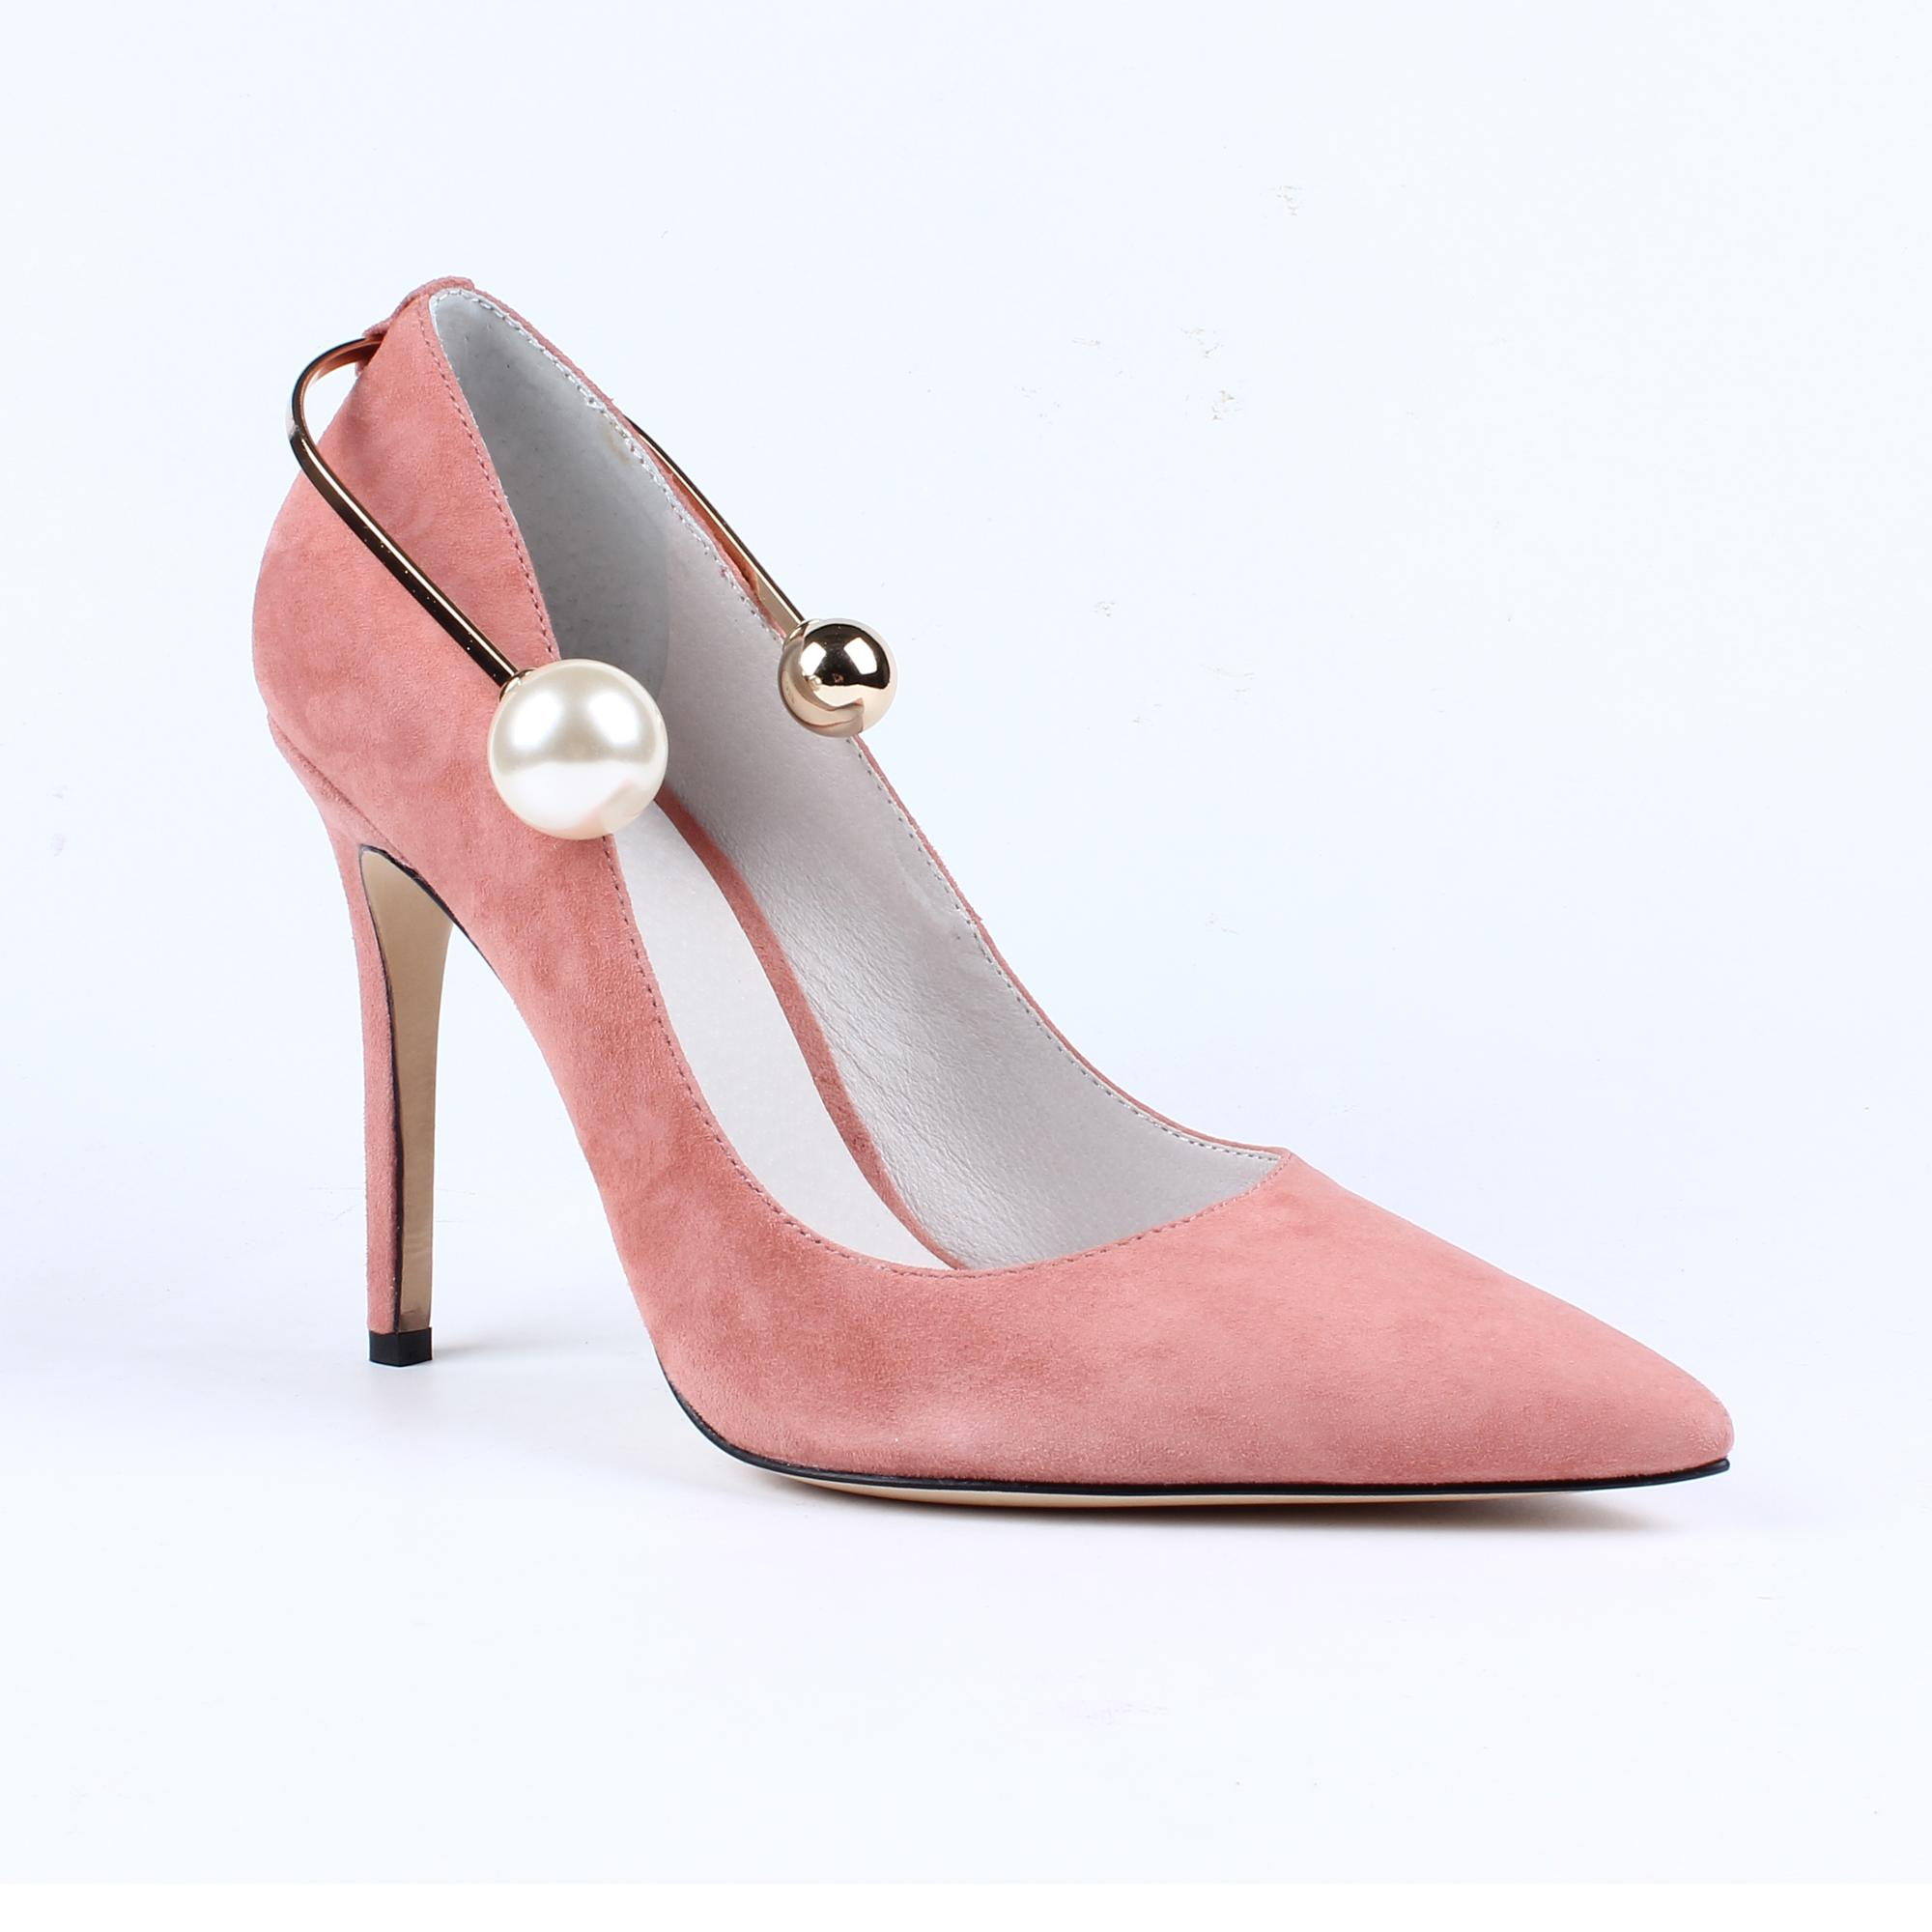 2257ec2a527 2018 trendy new fashion girls high heels women dress shoes ladies court  shoes